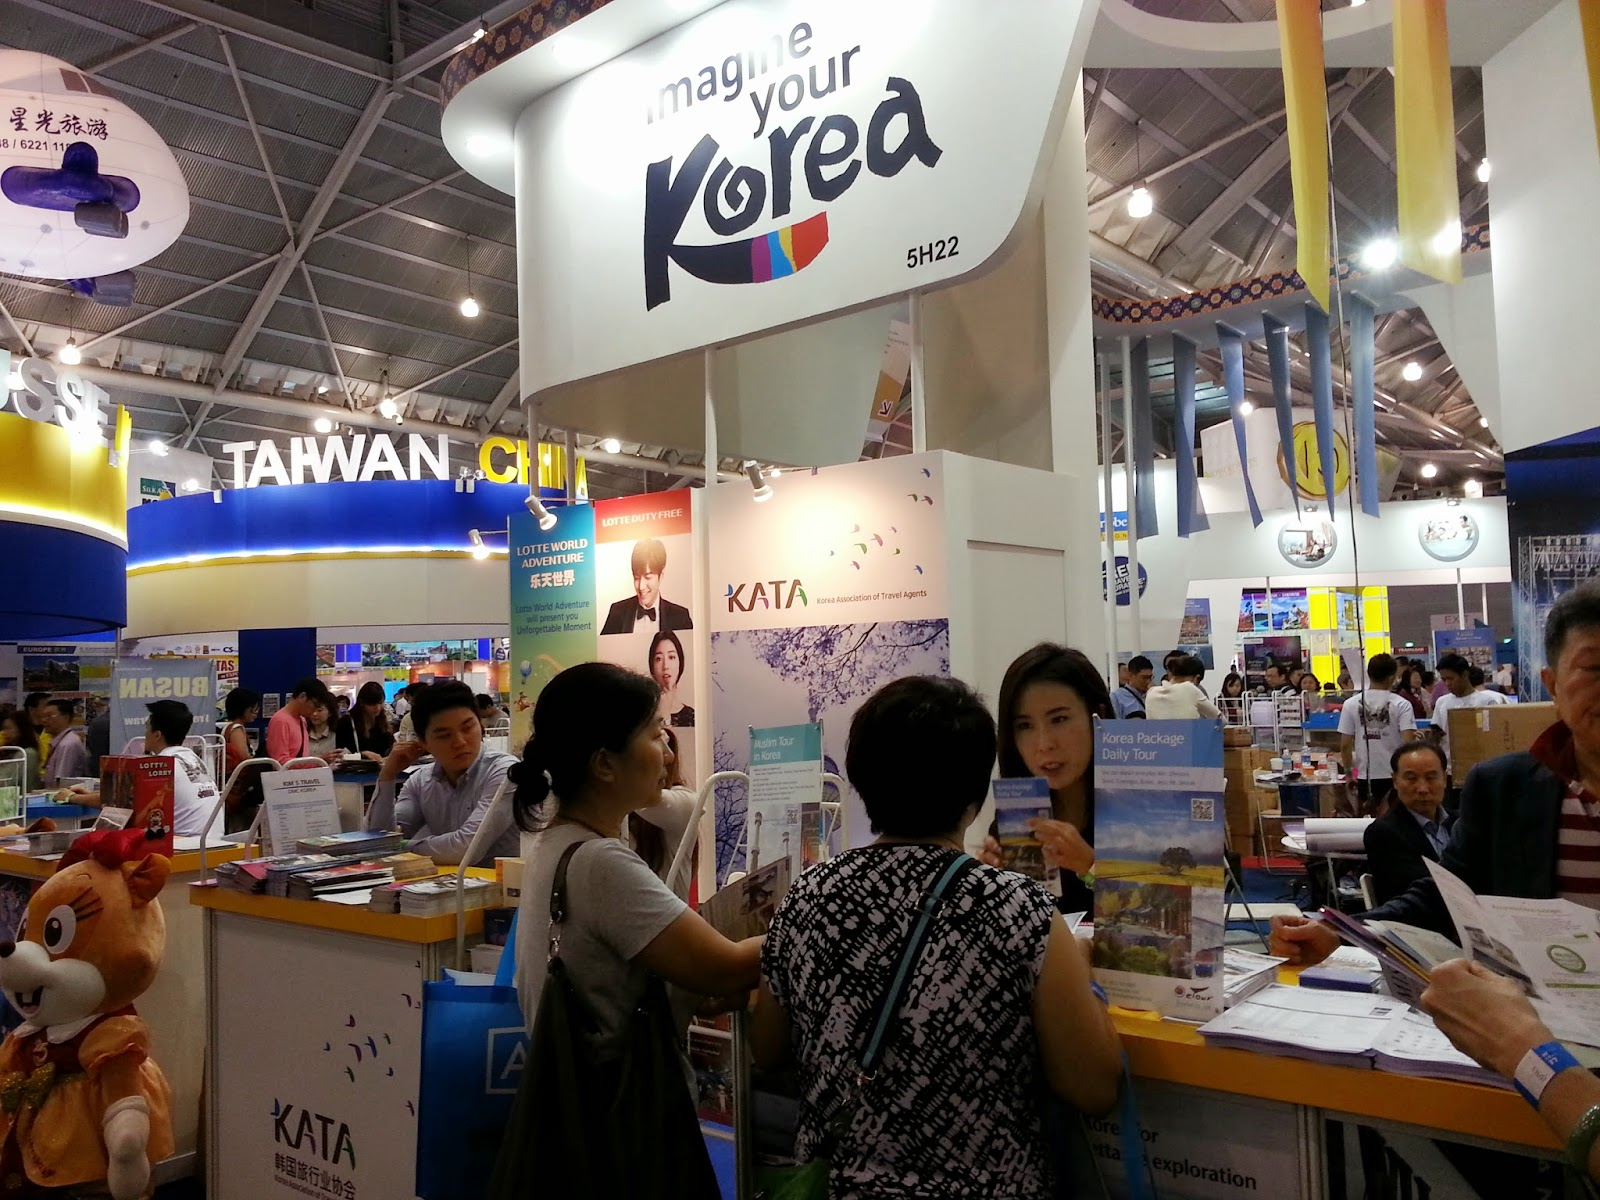 NATAS Singapore 2014 (Korea E Tour)